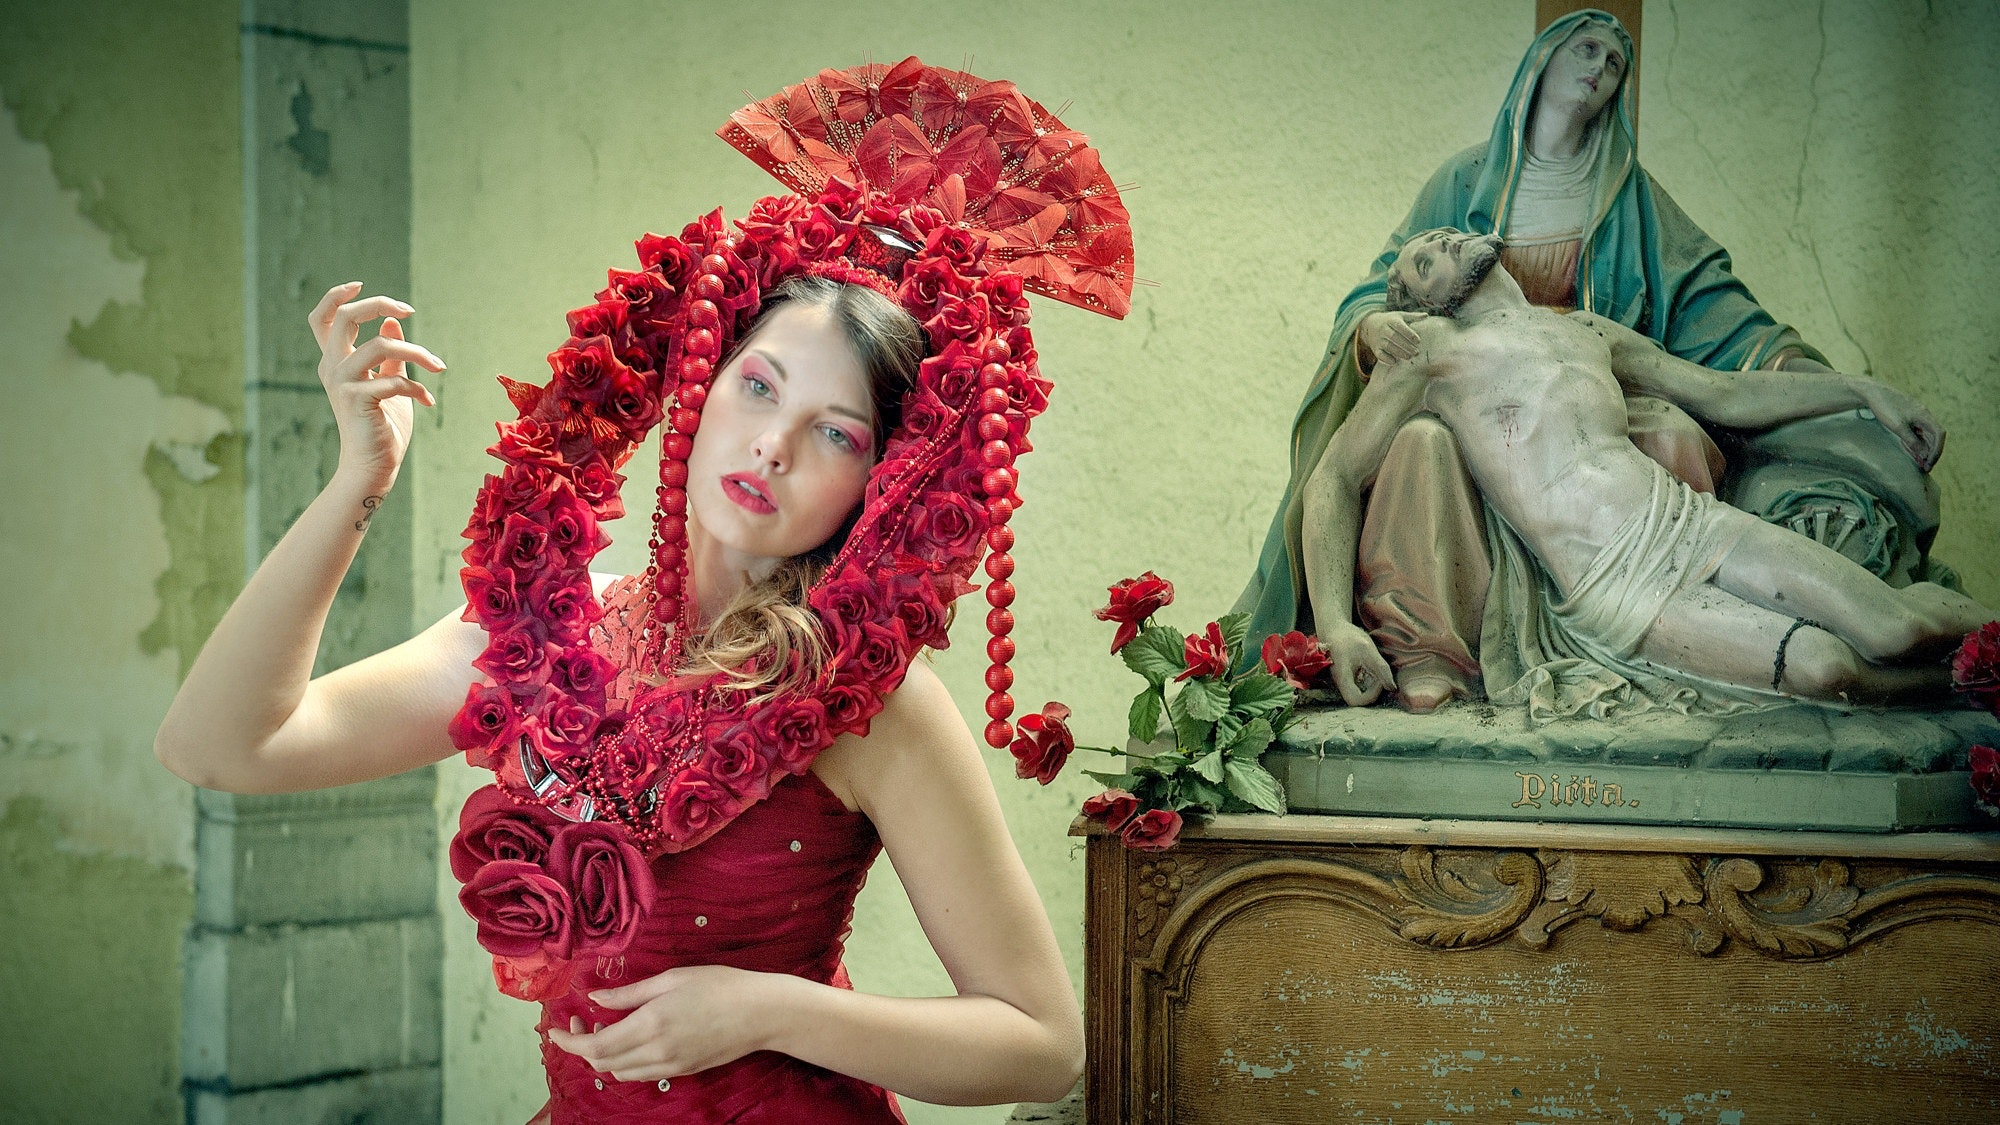 Midsection of Woman Wearing Red Flower, Adult, Rustic, Photoshoot, Portrait, HQ Photo